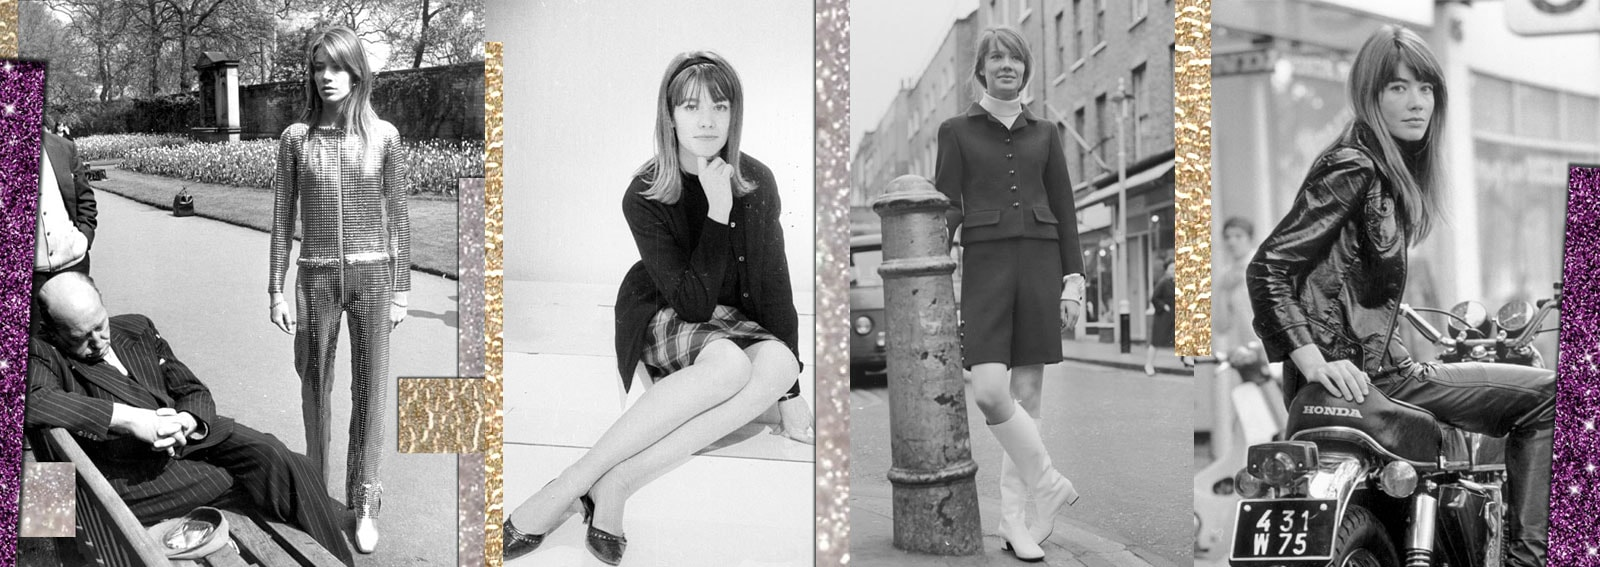 cover get the look francoise hardy desktop